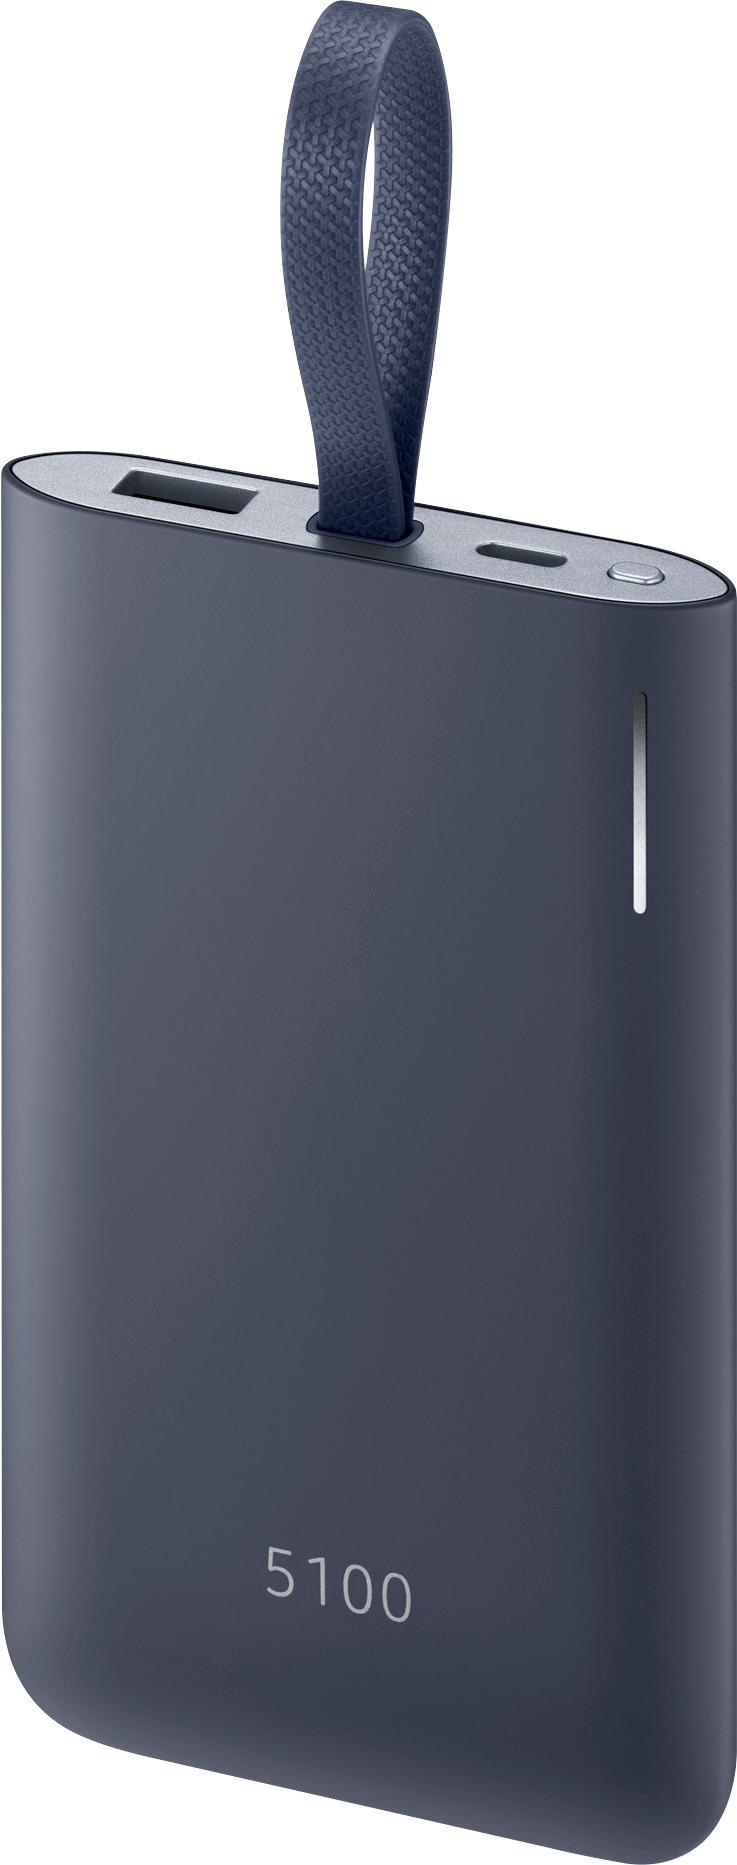 Save Up To 20% On Samsung Charging Devices At Best Buy Through Nov 4th